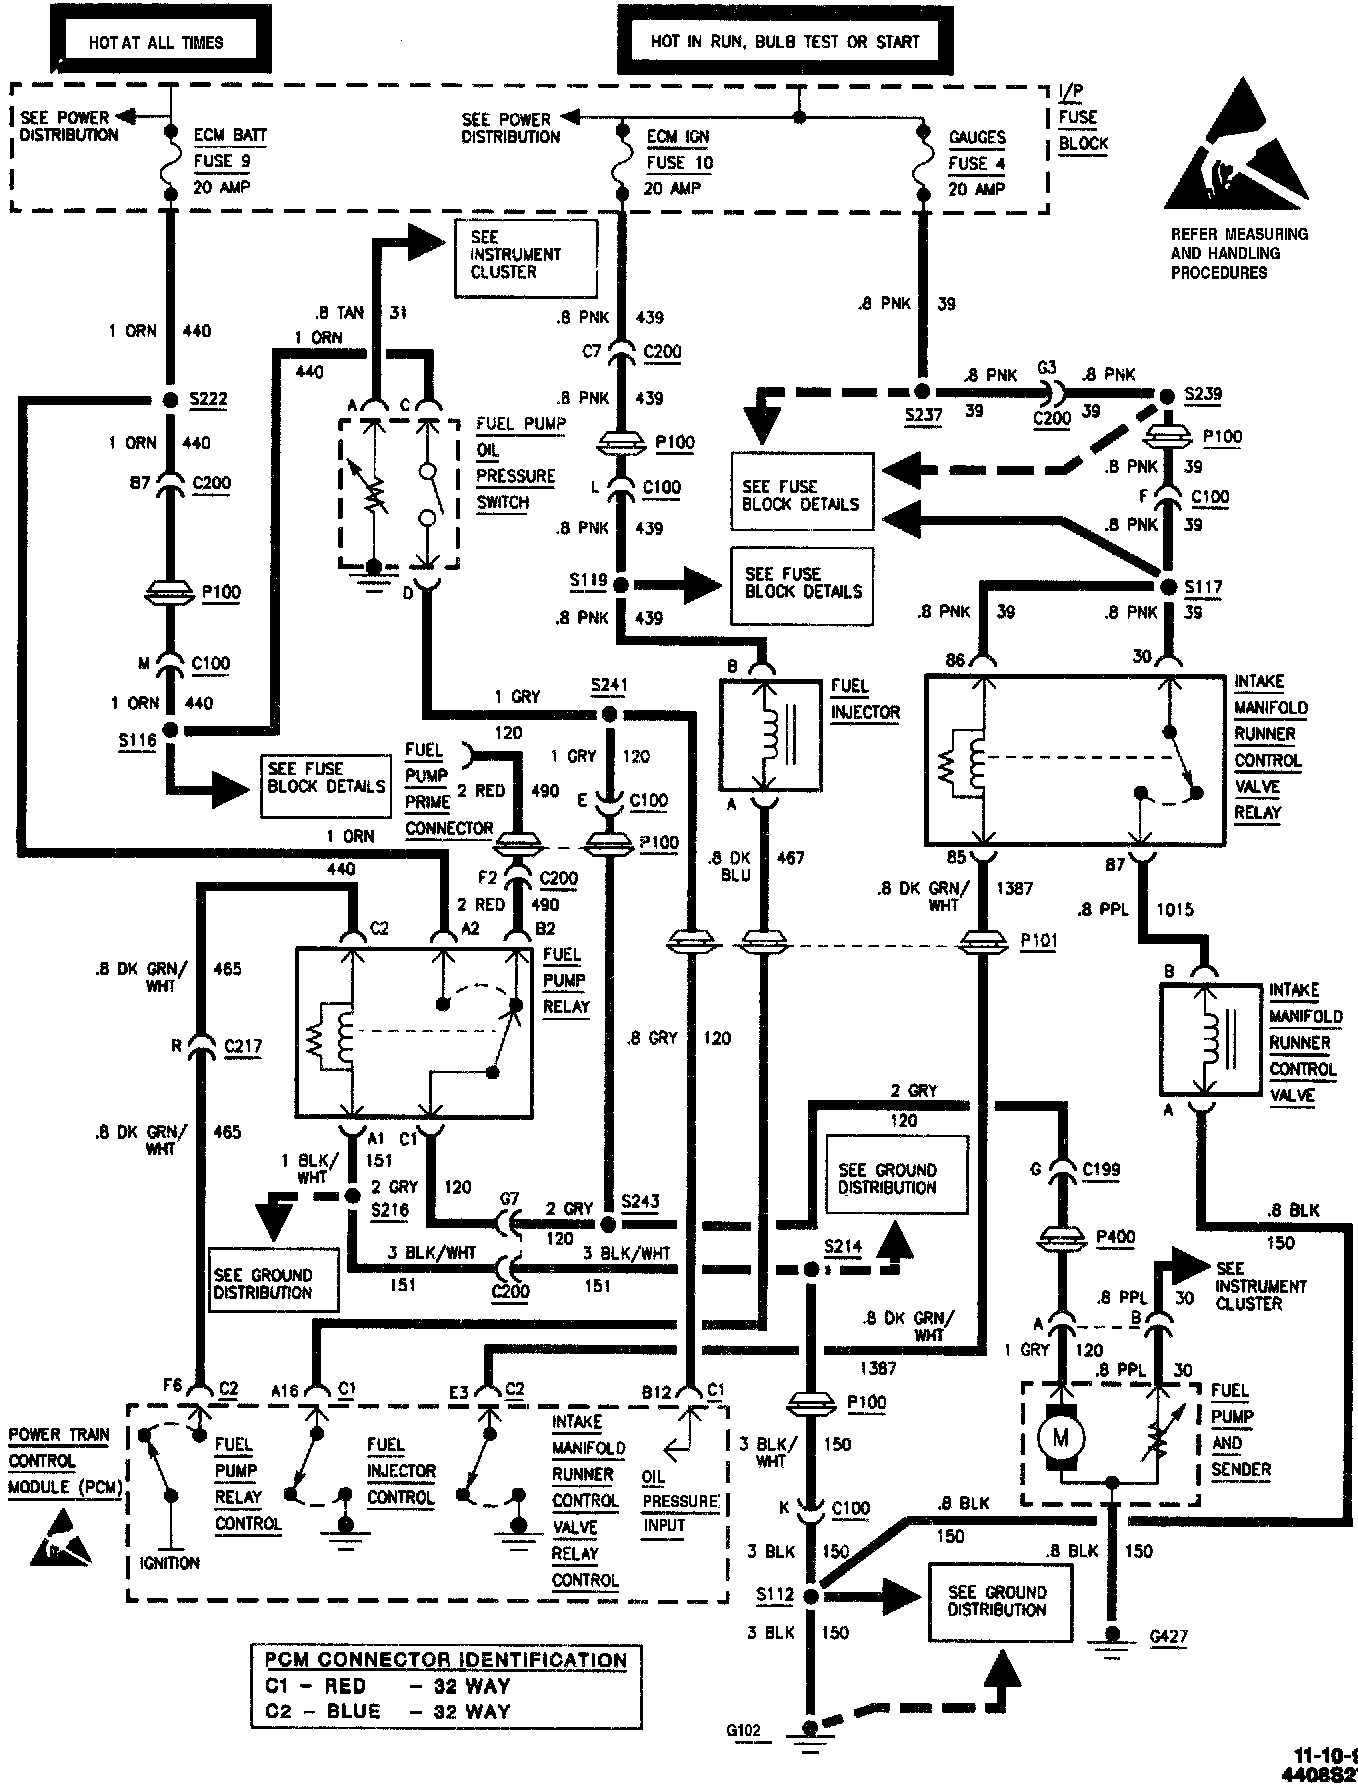 Wiring Diagrams For Mack Trucks Library 2005 Truck Diagram Fuel System In Addition Pump 96 Chevy Blazer Turn